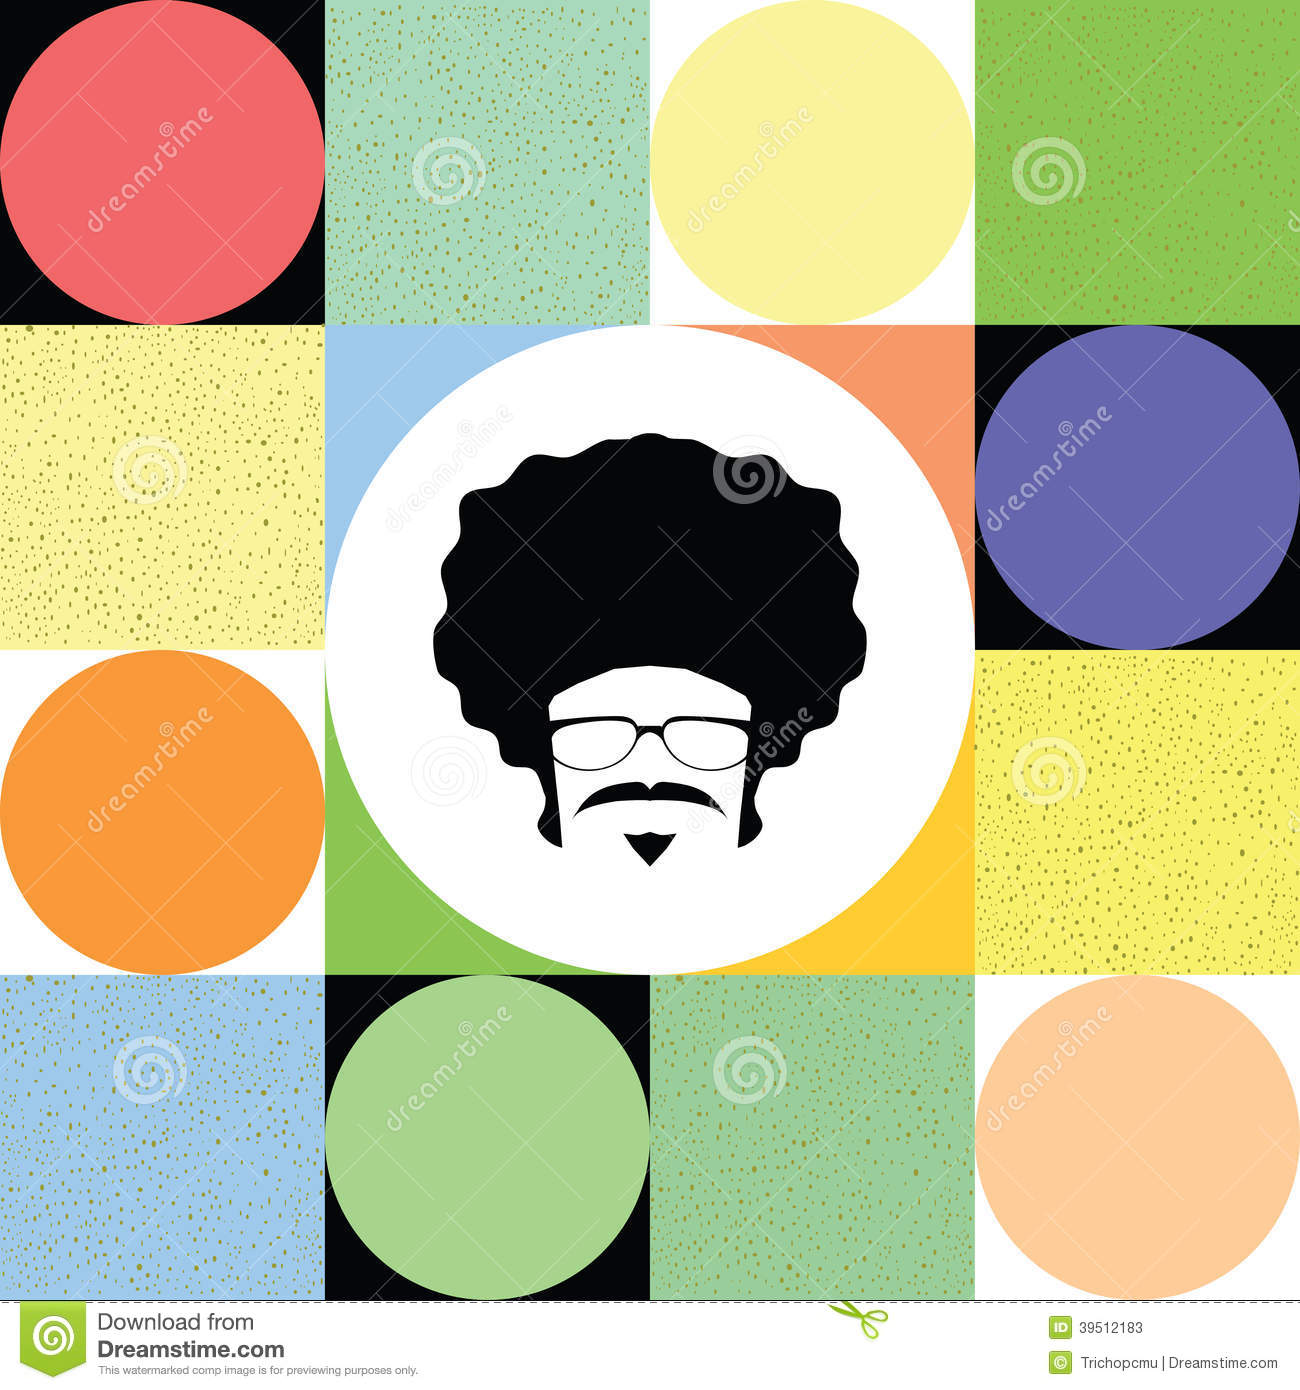 Afro man on colorful retro background